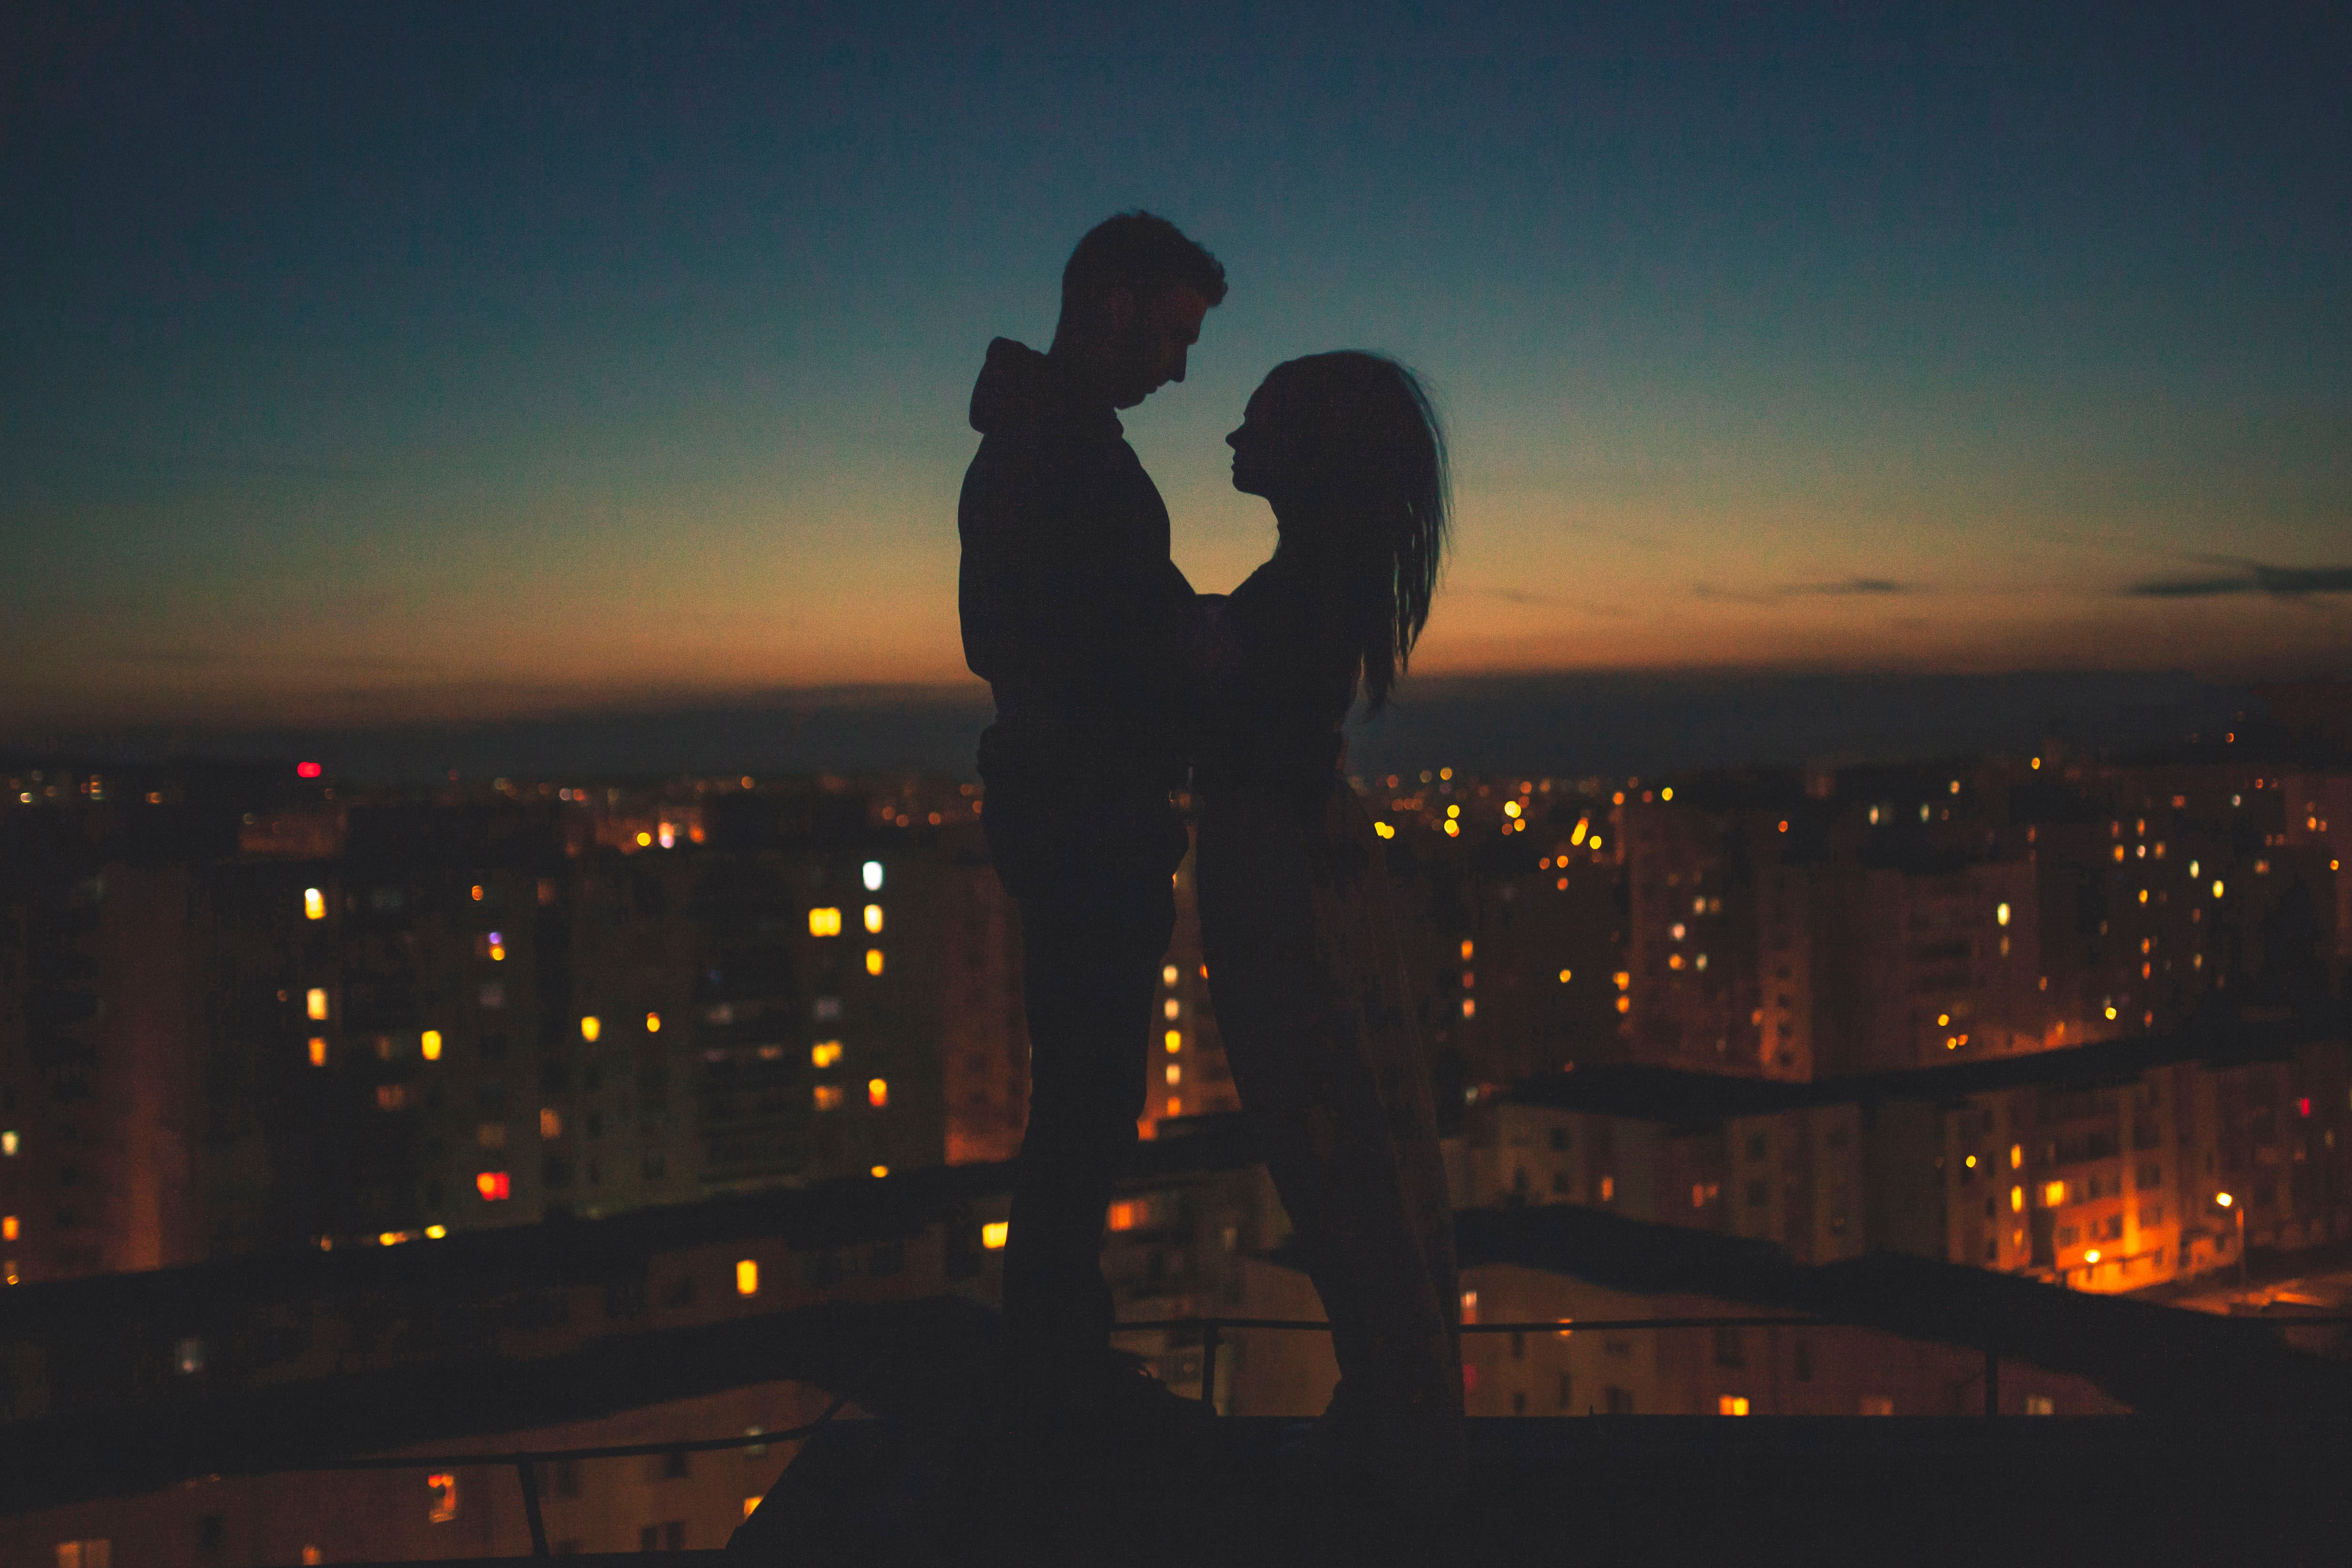 couple silhouette city view behind 1574939685 - Couple Silhouette City View Behind -